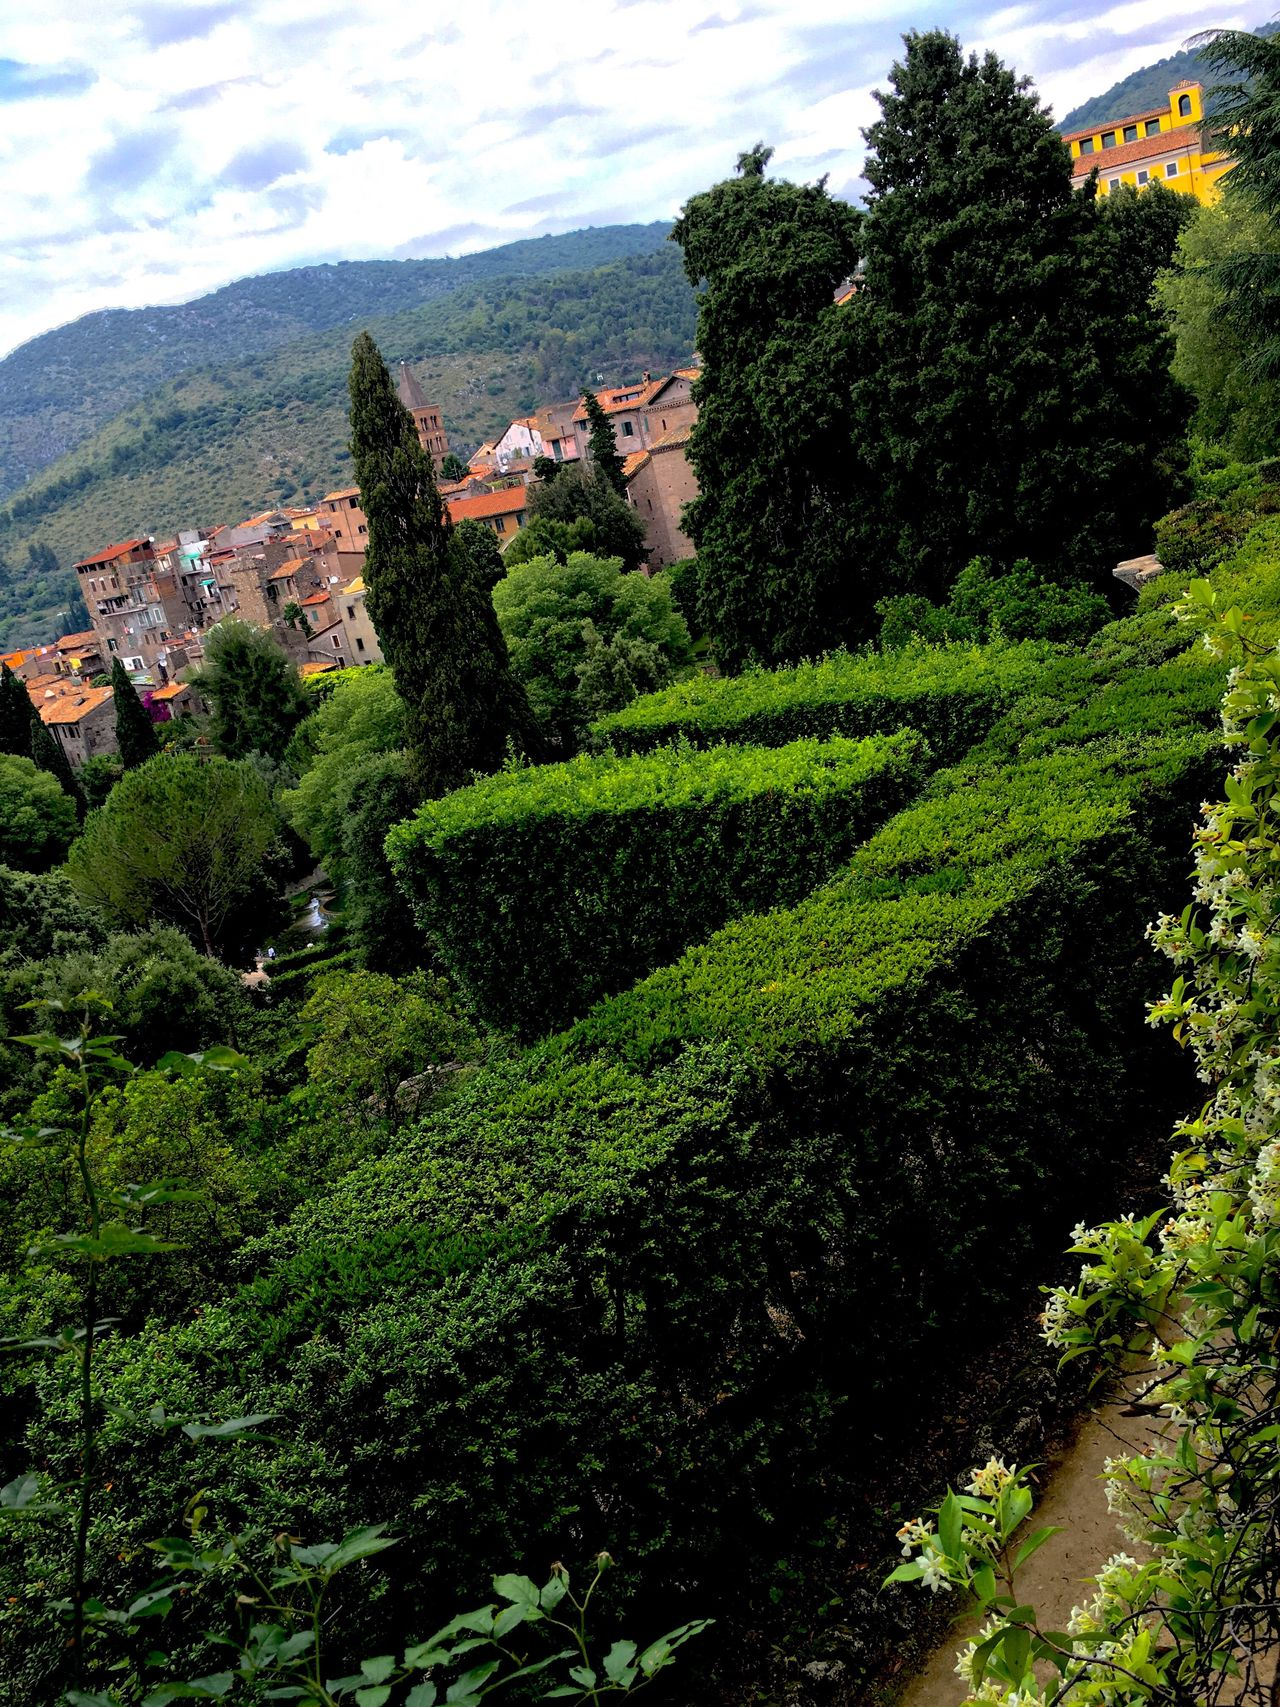 Nature Growth Green Color Beauty In Nature Tree Building Exterior Scenics Outdoors Plant Built Structure Tranquil Scene Mountain Tranquility Architecture Sky Day One Person Freshness People Cityscapes Cityscape Landscape Medieval Architecture Formal Garden Villa D'Este